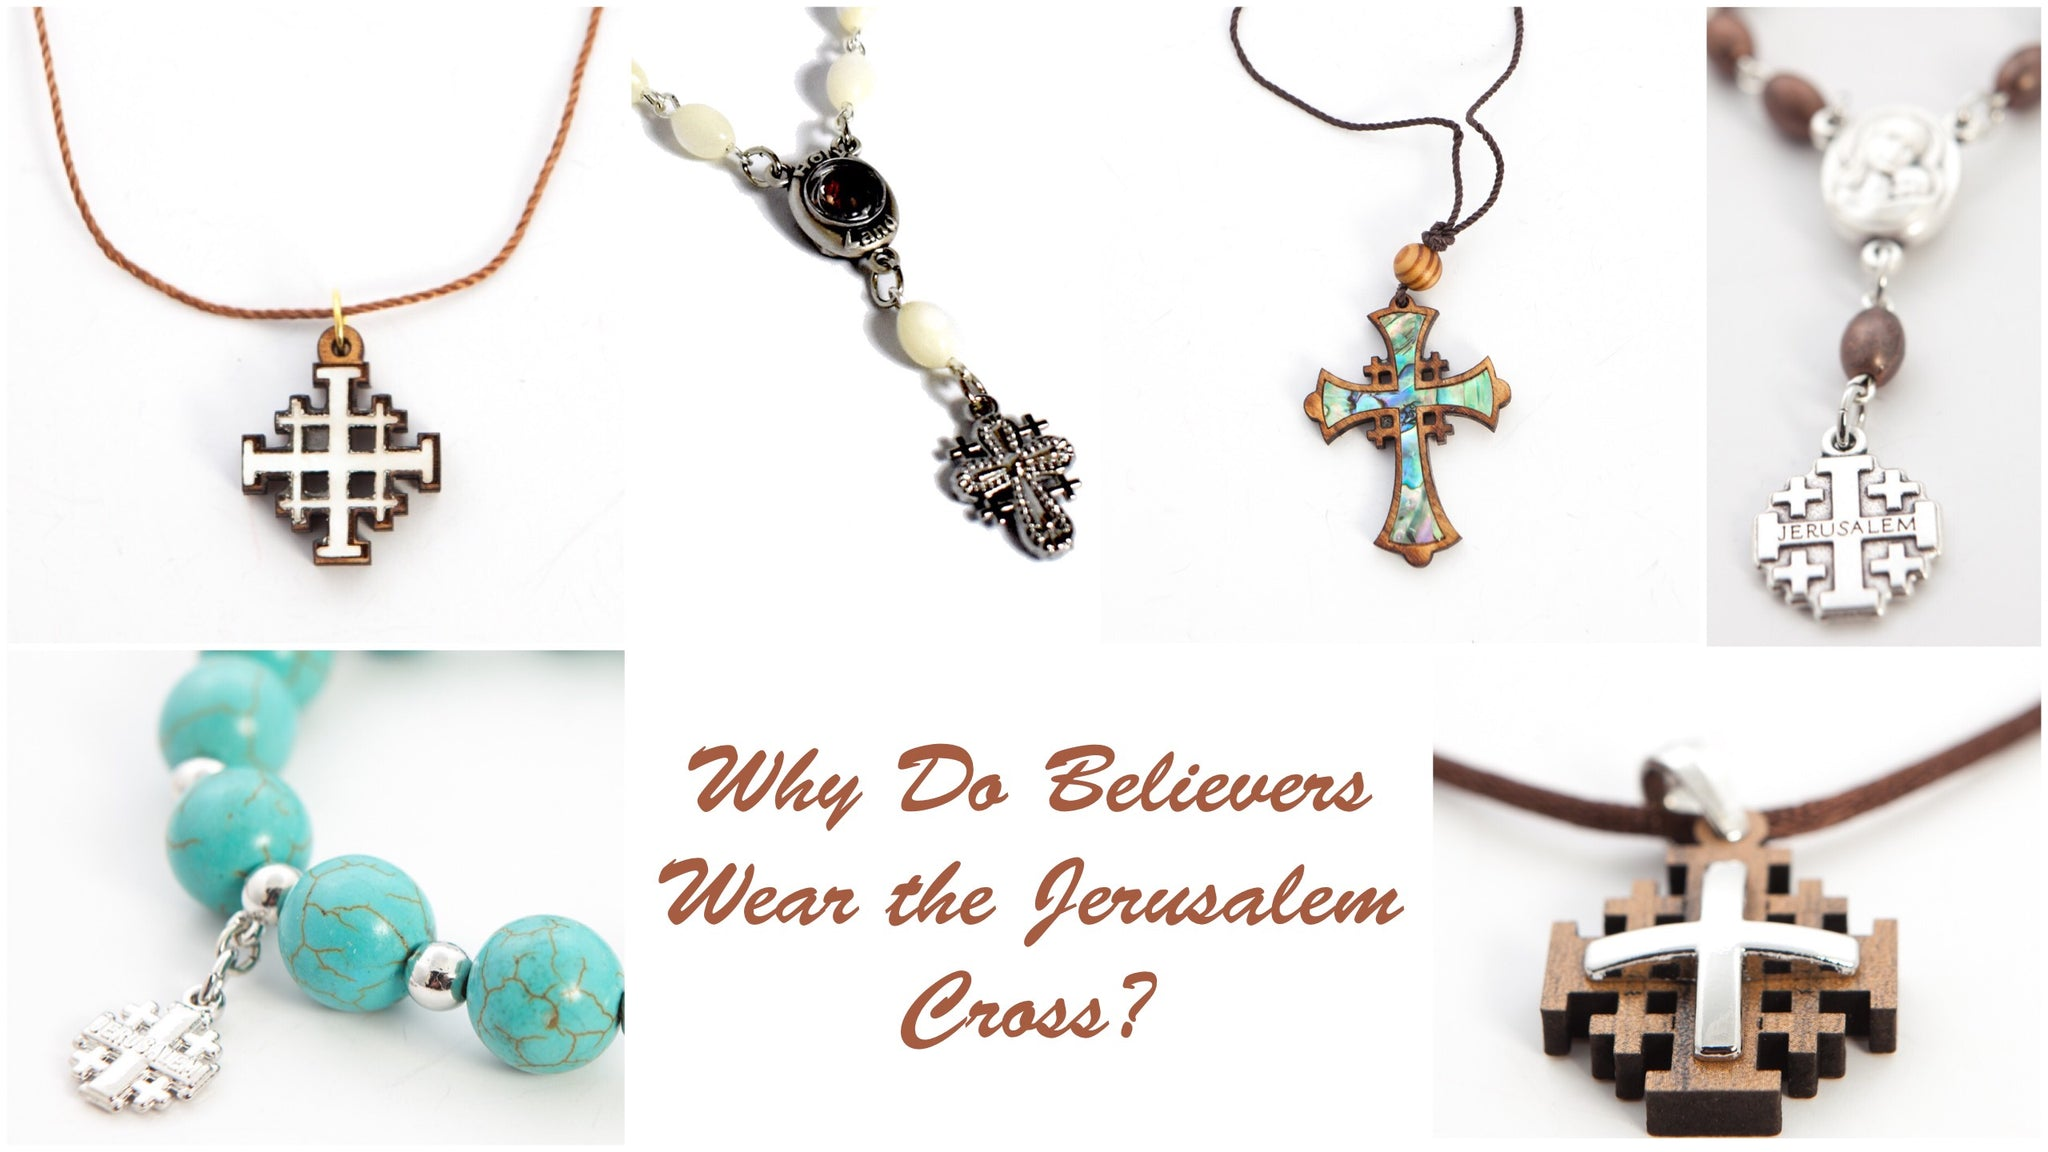 Why Do Believers Wear the Jerusalem Cross?